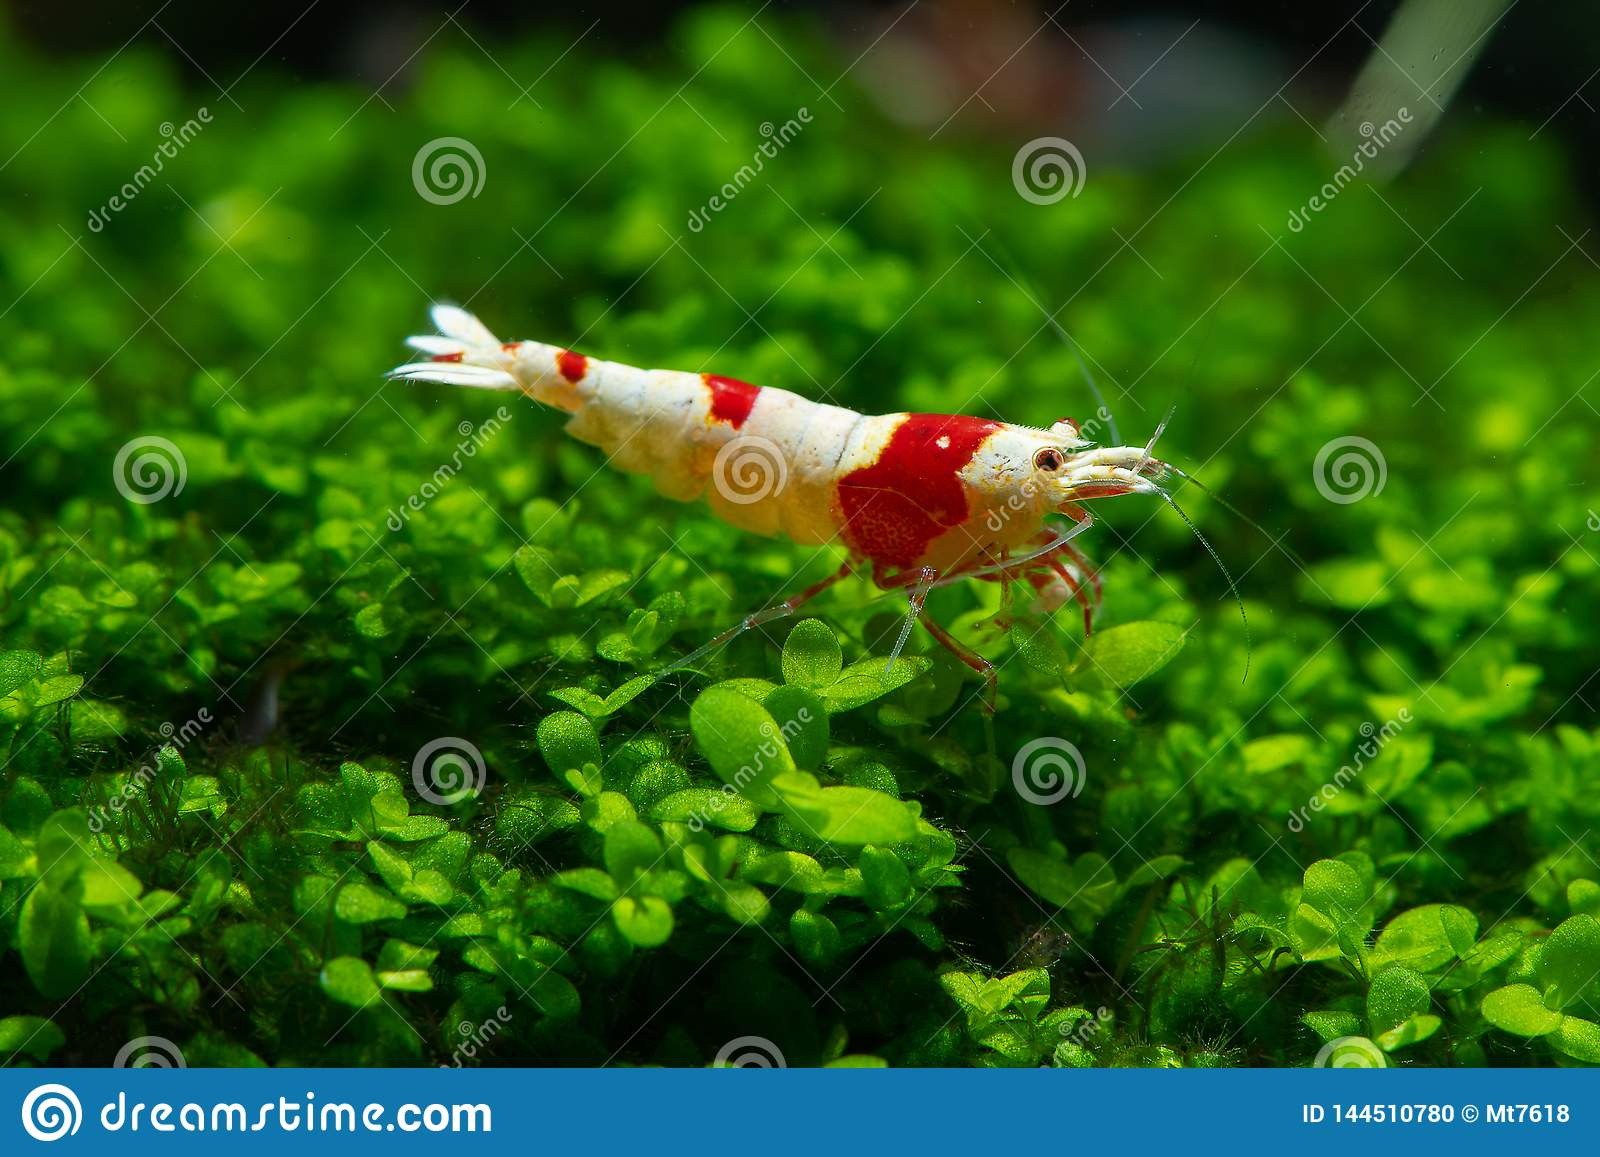 Red bee shrimp stay on grass or aquatic moss with dark and green background